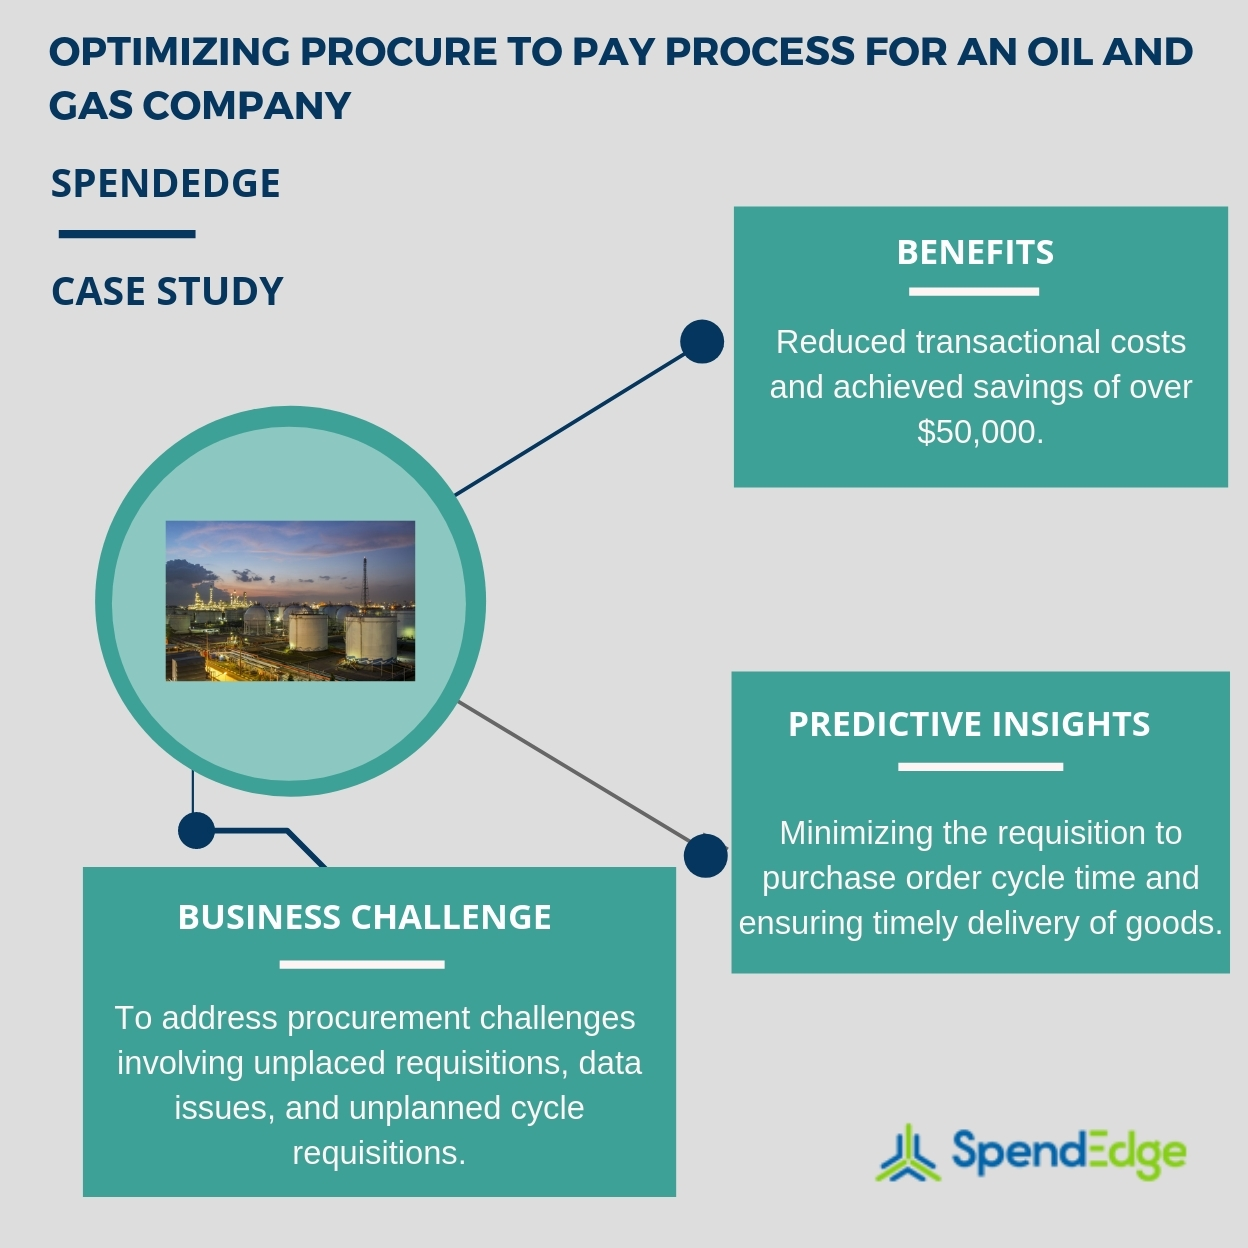 Optimized Procure to Pay Process, Reduced Costs, and